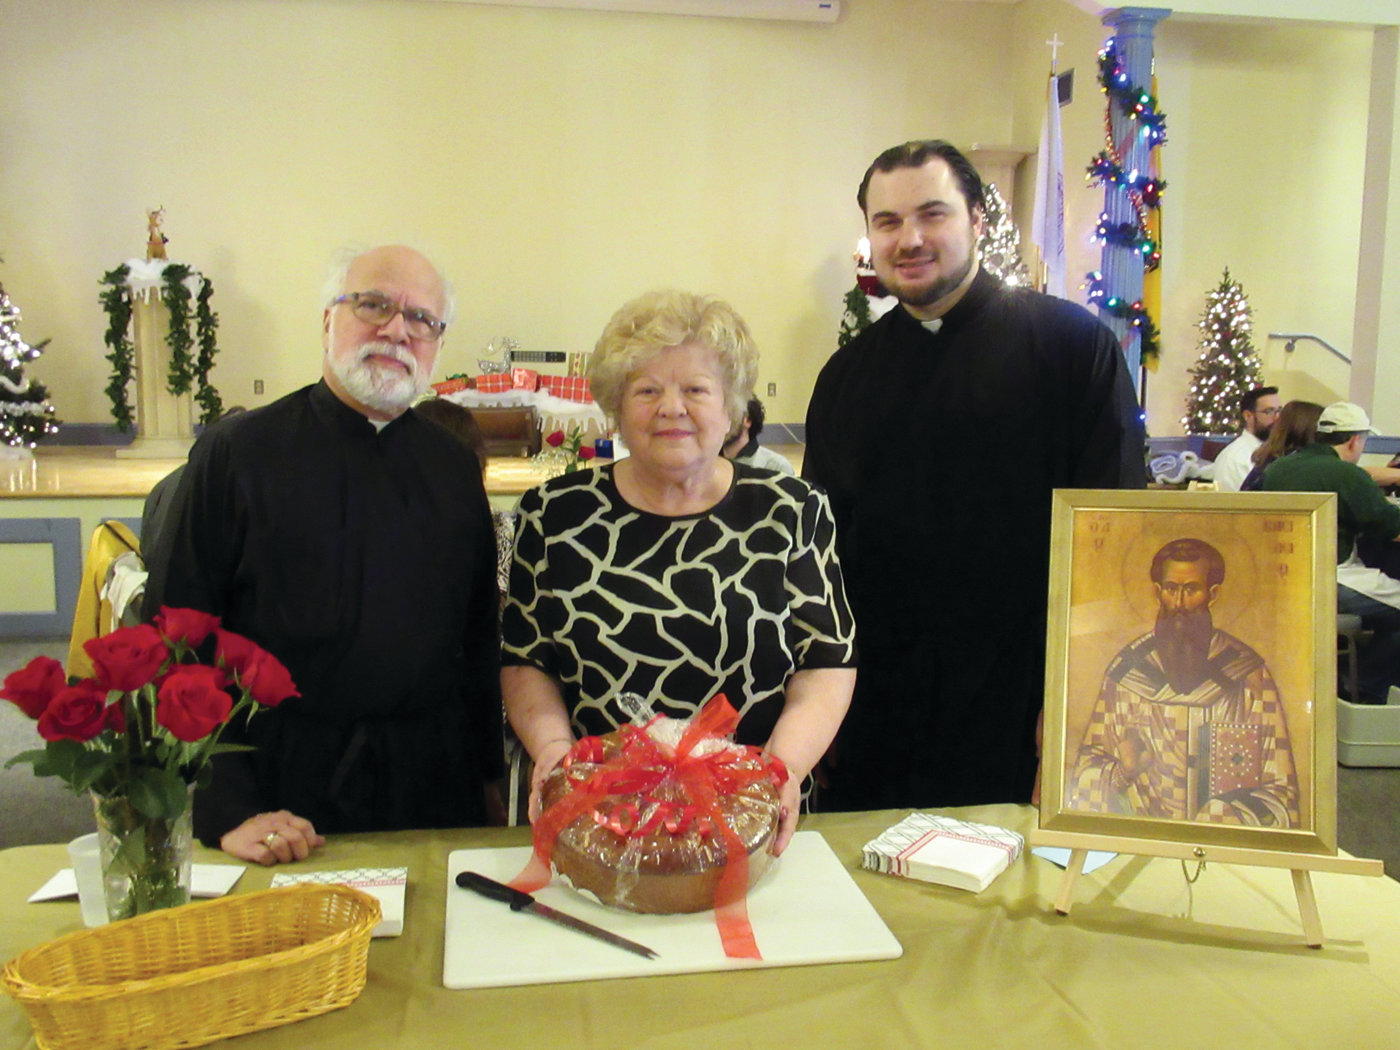 CHAIR'S CORNER: Kate Silva, center, who chaired Sunday's unique Philoptochos Vasilopeta Luncheon, is joined by Church of the Annunciation Pastor Rev. Andrew George, left, and Father Nick Lanzourakis prior to the cutting of the Saint Basil's Bread.